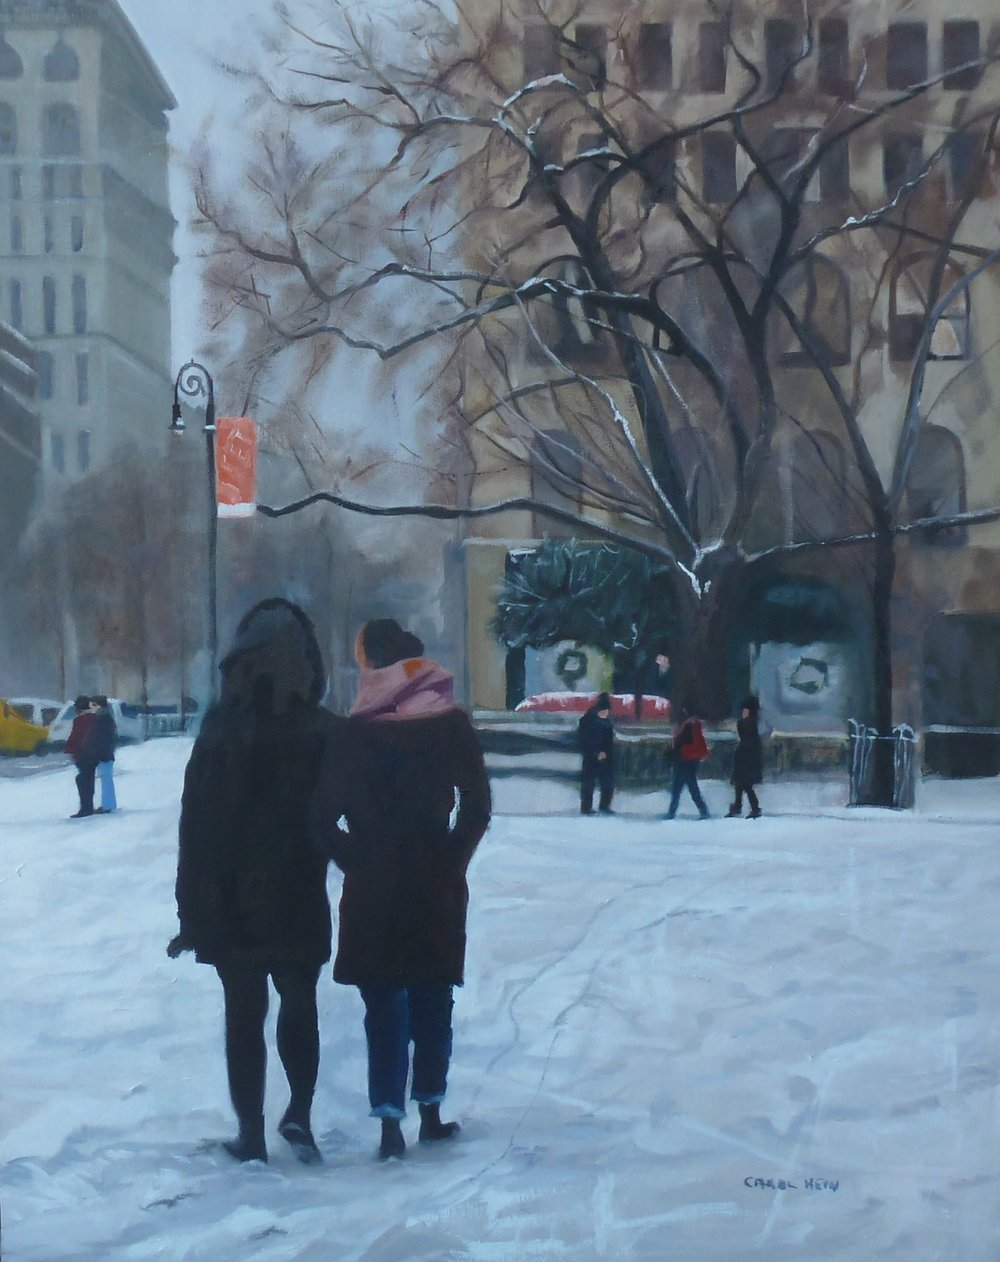 Carol Hein, Budding Artist Winner, Christmas in the City